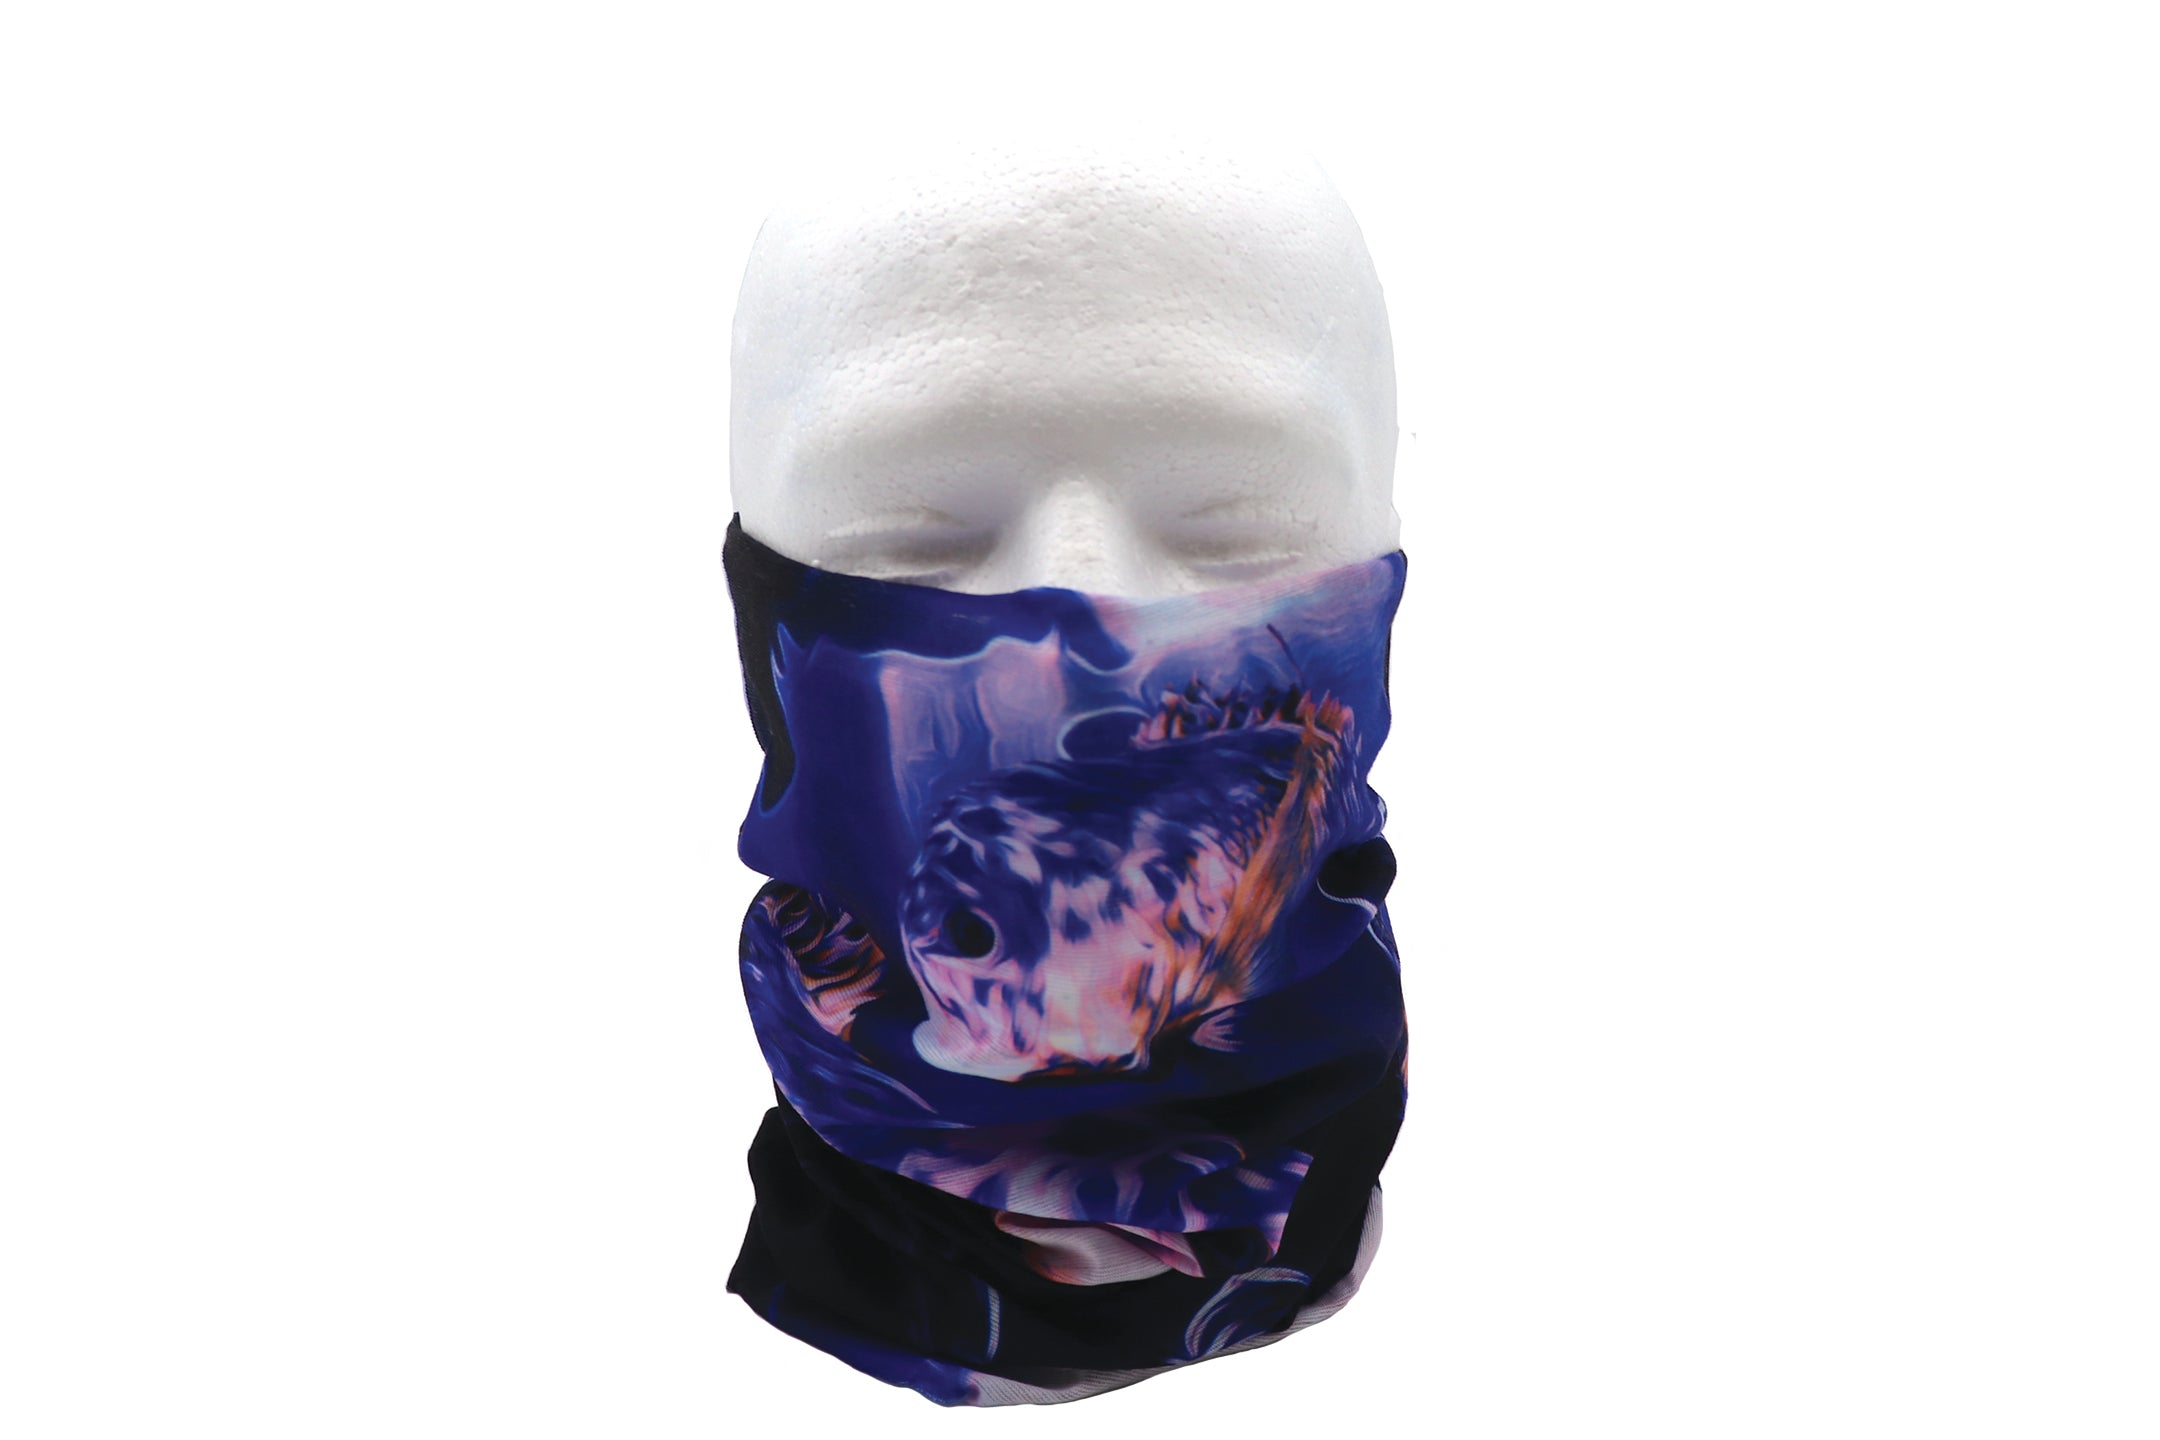 Koi fish gaiter bandana of a large KOI Fish swimming under water. Dark blue and slight orange and blue fish. Face covering for protection. Breathable gaitor for sports or face mask.